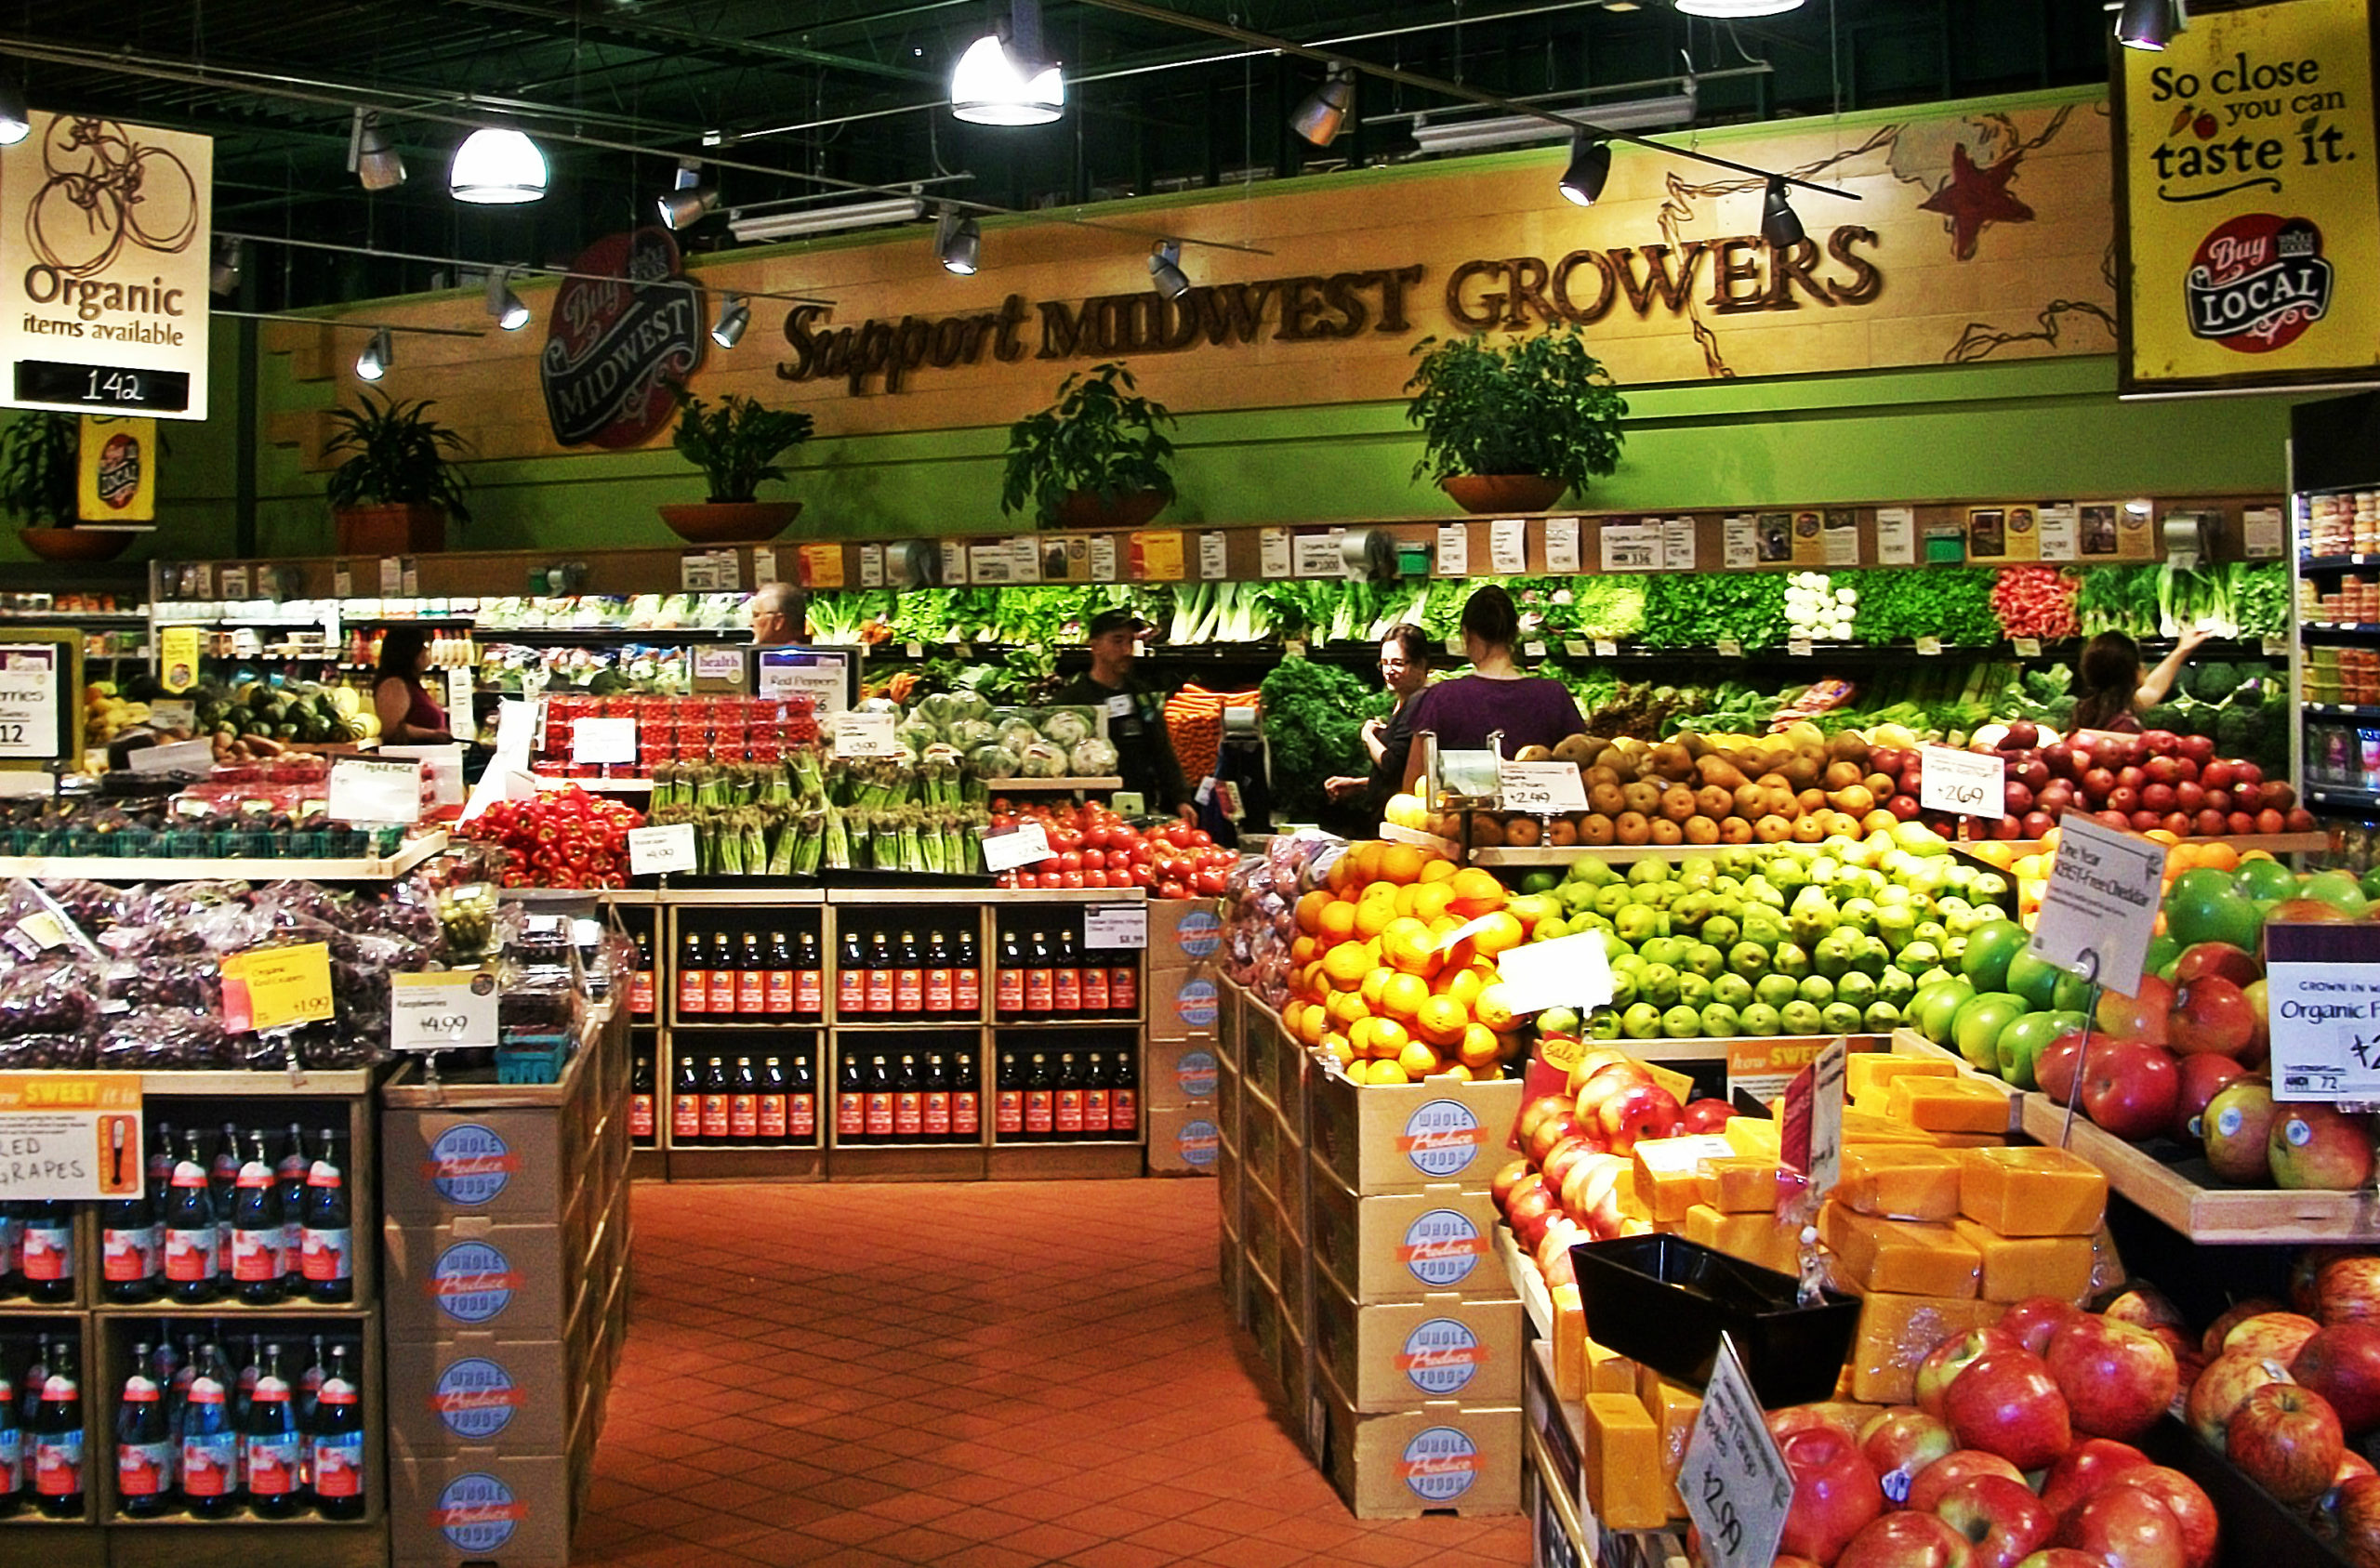 Whole Foods in Exton, Newtown Square Now on Track for 2018 Opening